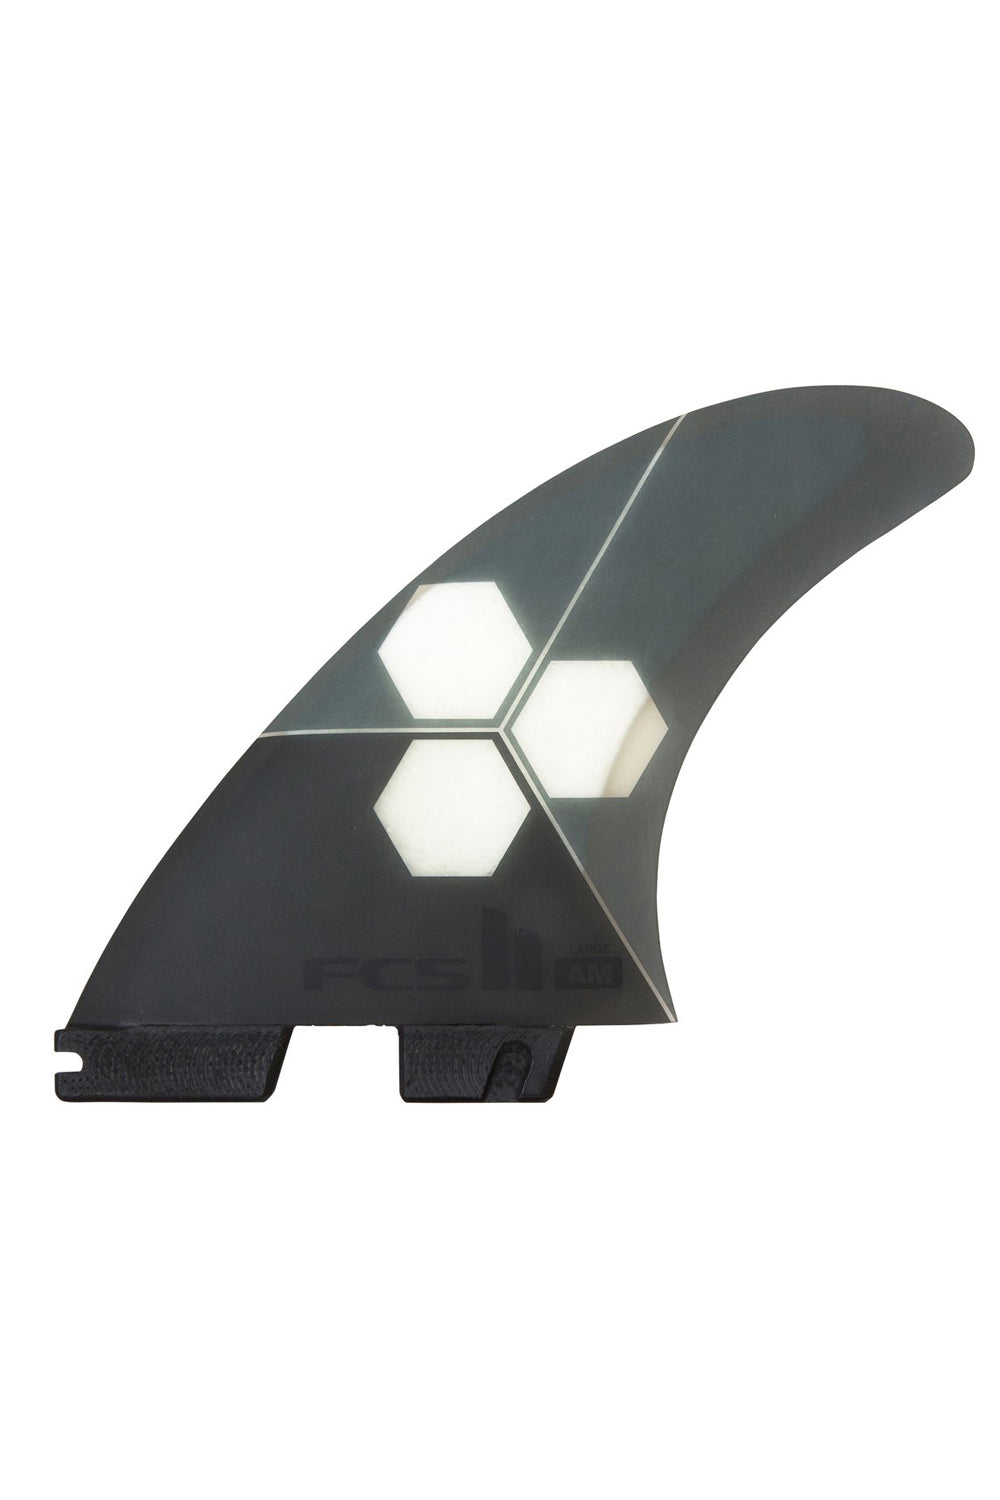 FCS II AM PC Tri-Quad Aircore Fins